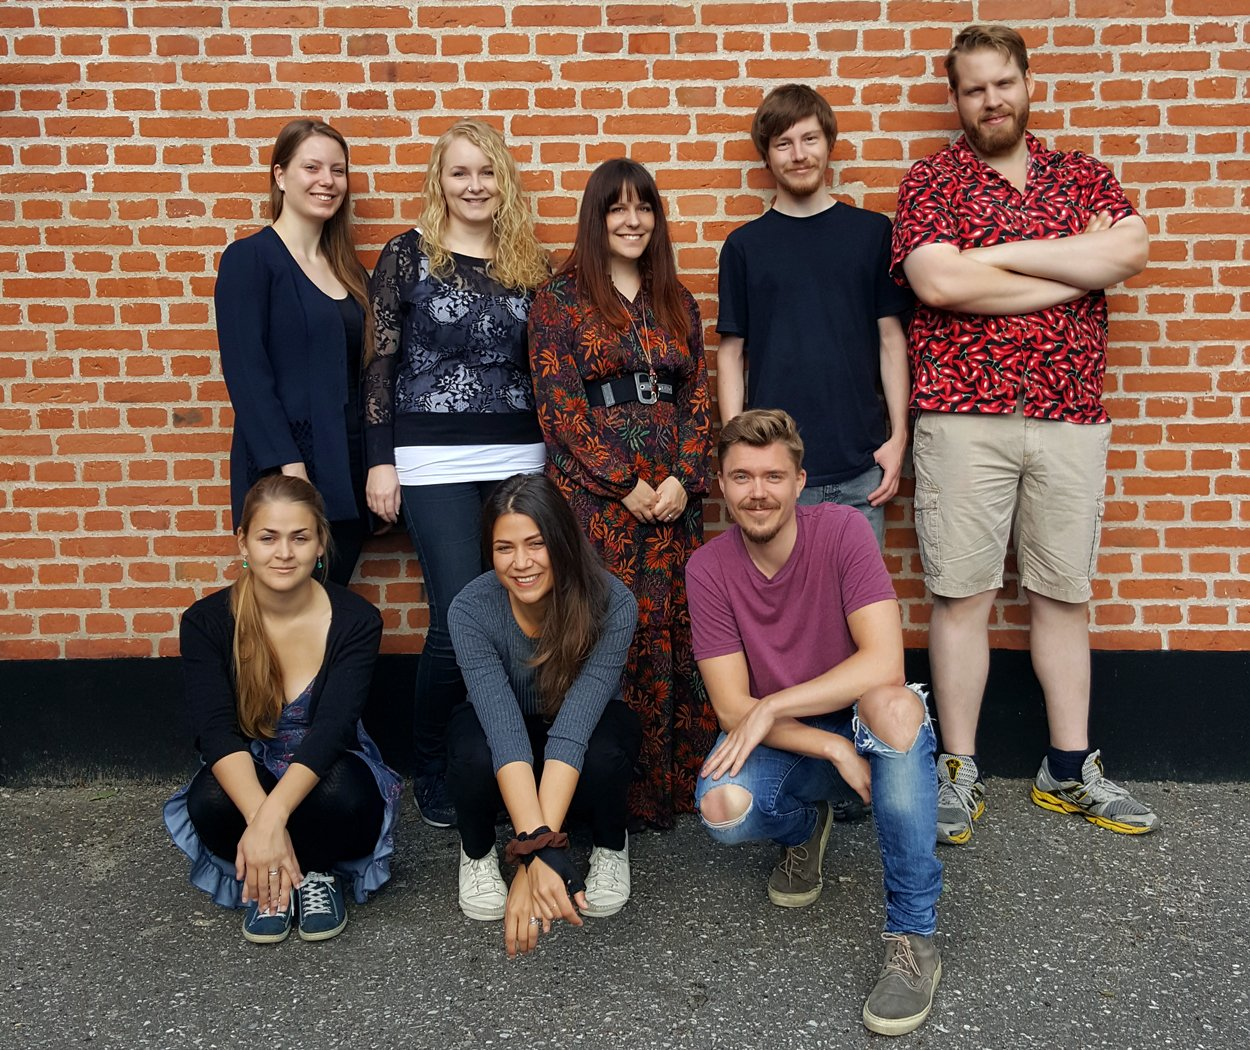 """Less than Human"" team: Julie Rebecca Billeskov Astrup (Animator and Assistant Production Manager), Matilde Soeltoft (Animation Lead and Animator), Anna Eckhoff Ohrt Nissen (CG Generalist, Production Manager, Rigger), Lasse Steinbeck (Technical Director, Pipeline TD, Rigger), Morten Vestbjerg Boegelund Lassen (CG Generalist, Modeler, Concept Sculptor), Ida Marie Soendergaard (Animator, Storyboard Artist), Ditte Marie Ludvigsen (Art Director, Texturing and Lighting Artist), Steffen Bang Lindholm (Director, Editor, Animator)"